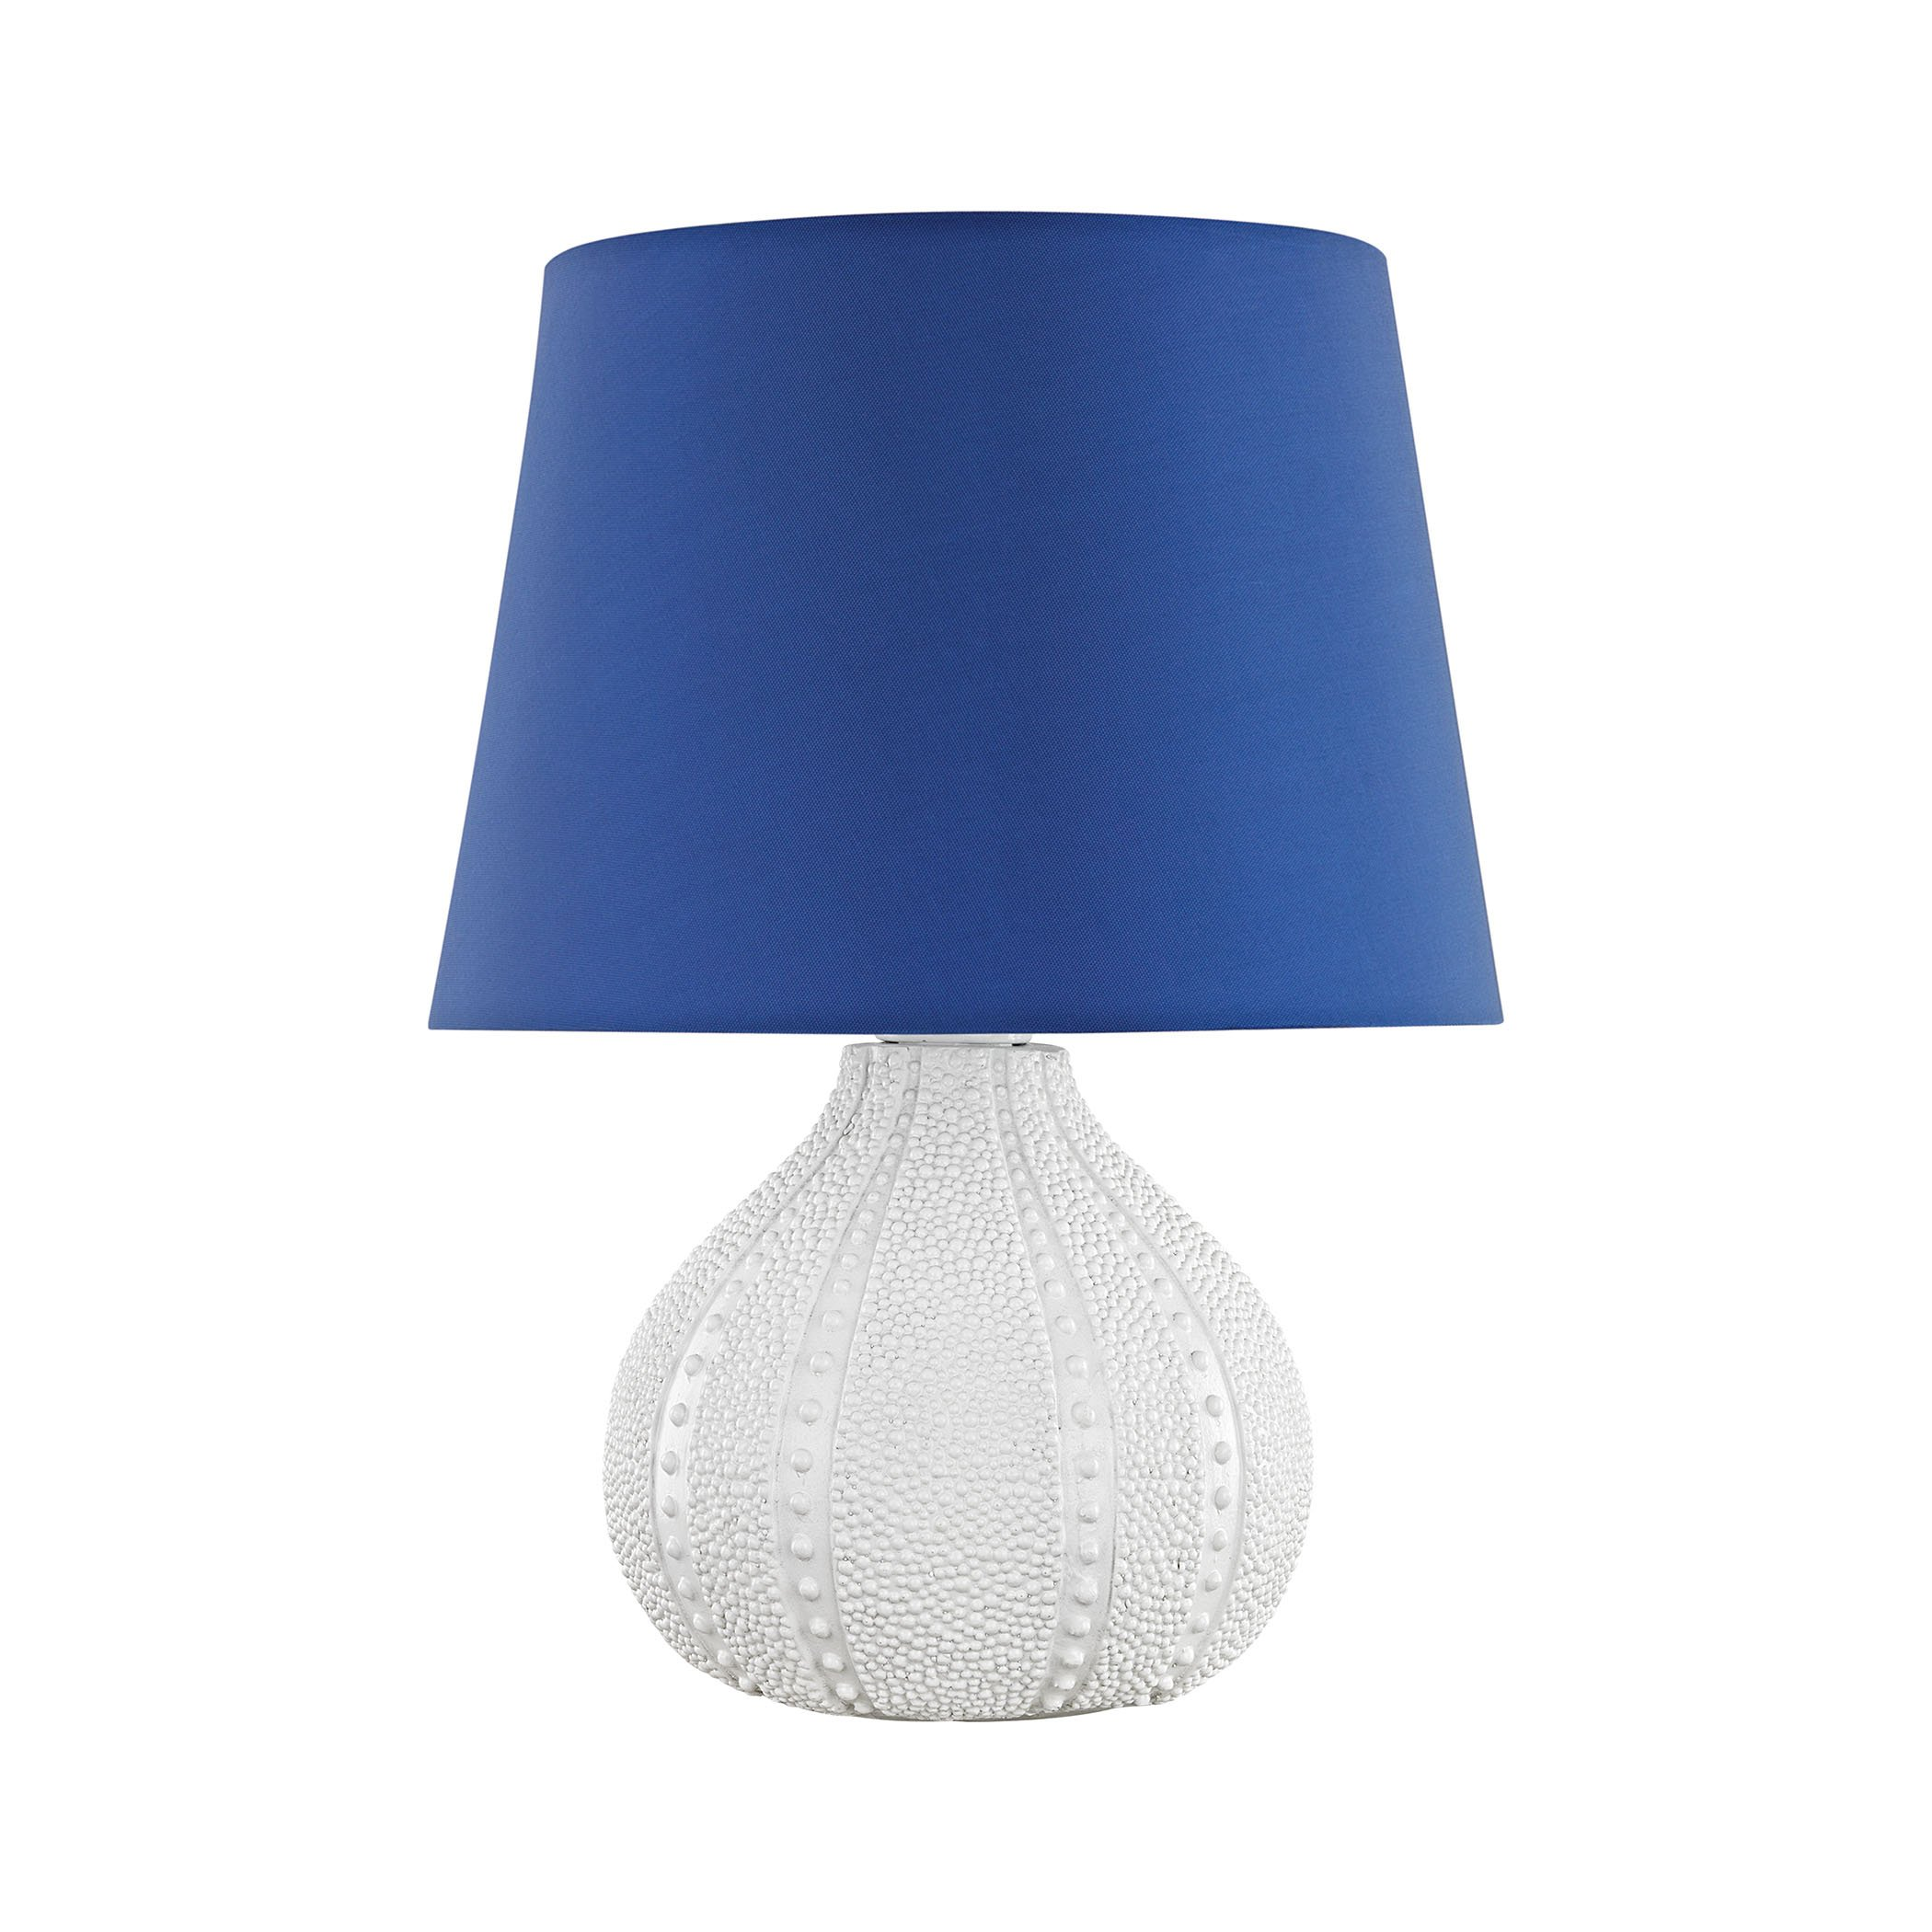 Aruba Outdoor Table Lamp With Royal Blue Shade by AR Lighting